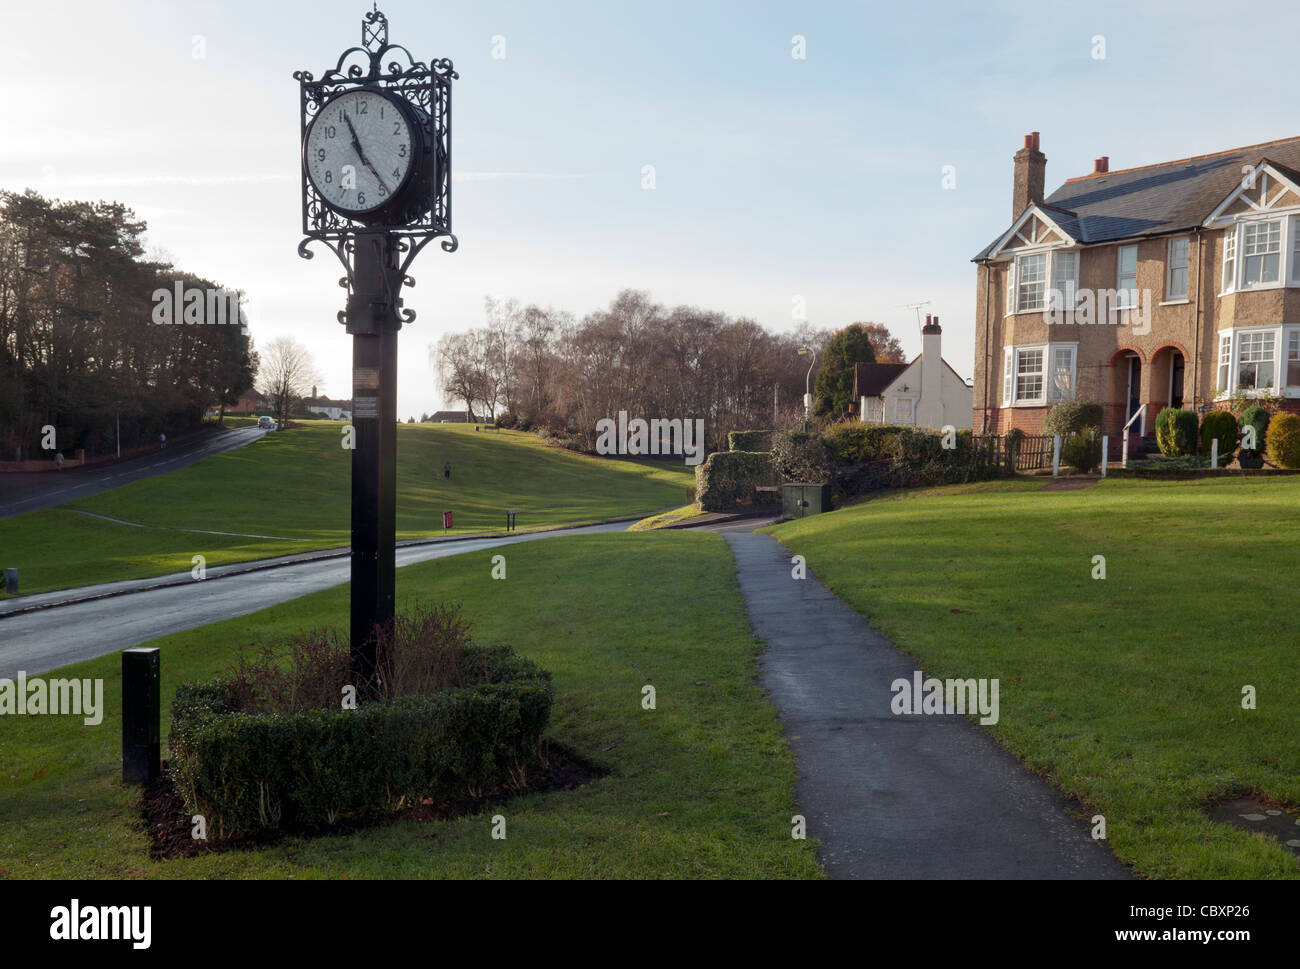 Commemoration memorial clock Gold Hill common Chalfont St Peter village Bucks - Stock Image